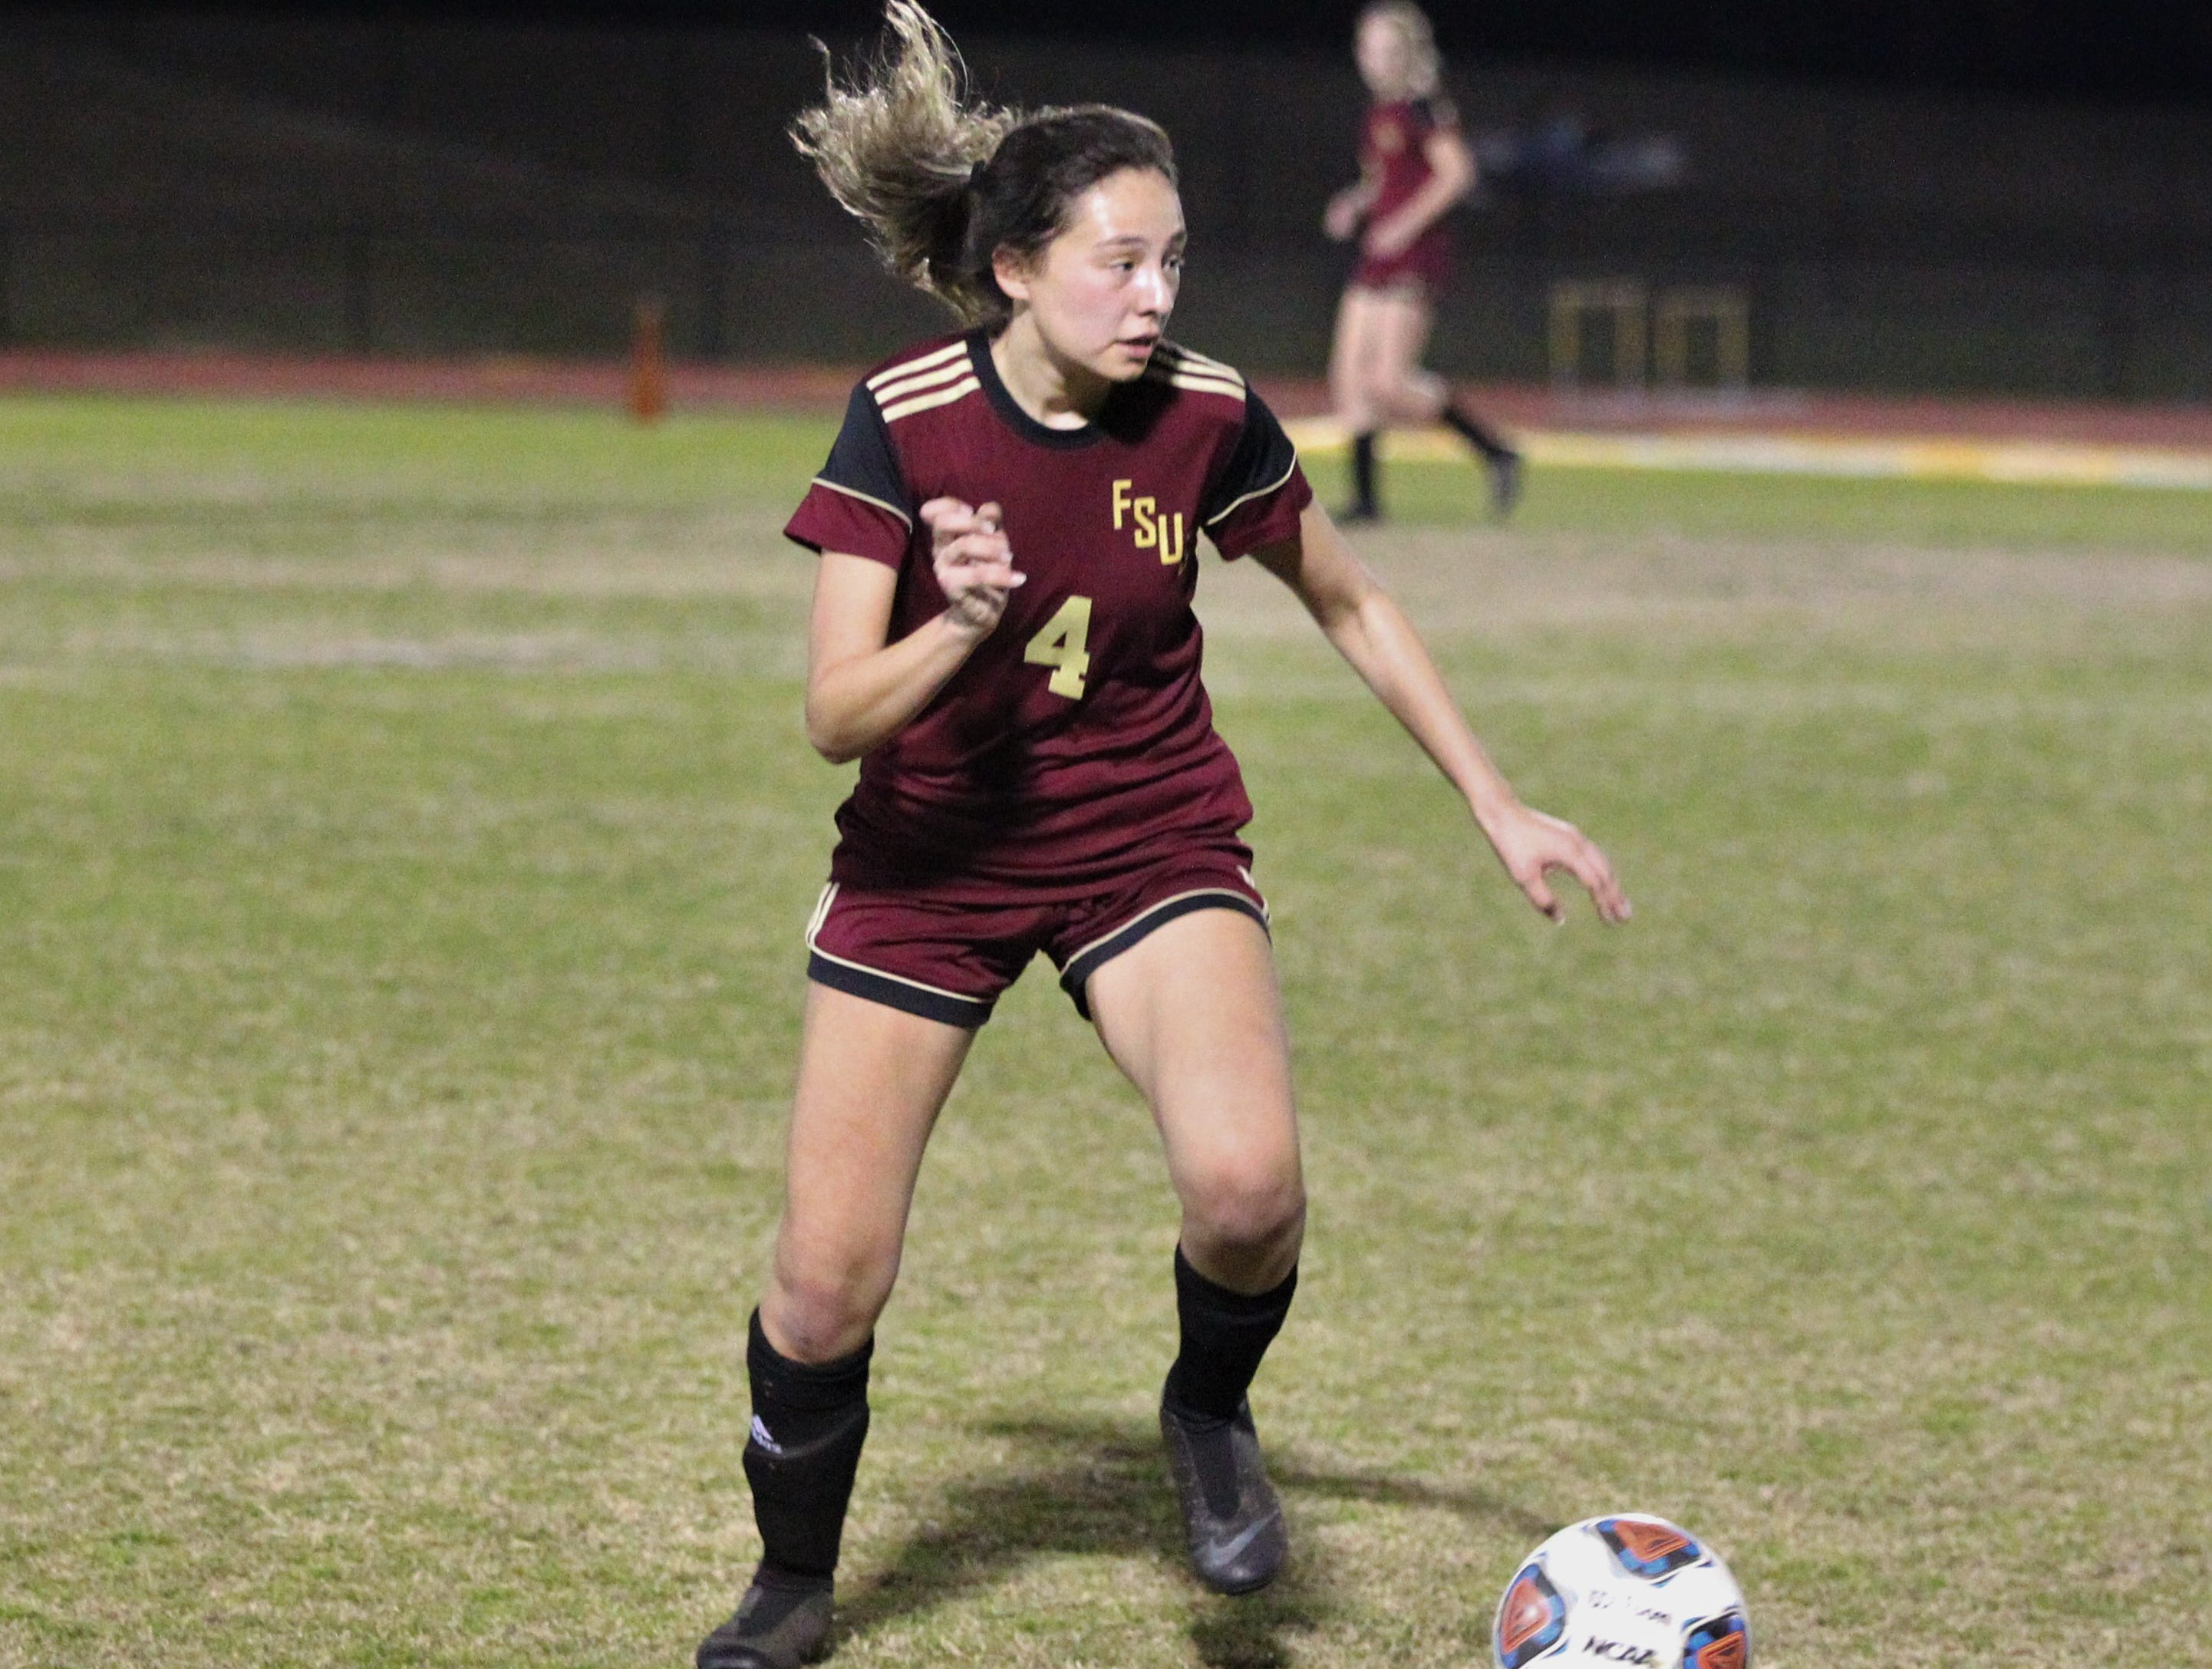 Florida High's Daphne Cervantes looks upfield for a pass as South Walton edged the Seminoles 5-4 in a penalty-kick shootout during a Region 1-2A semifinal on Feb. 8, 2019.